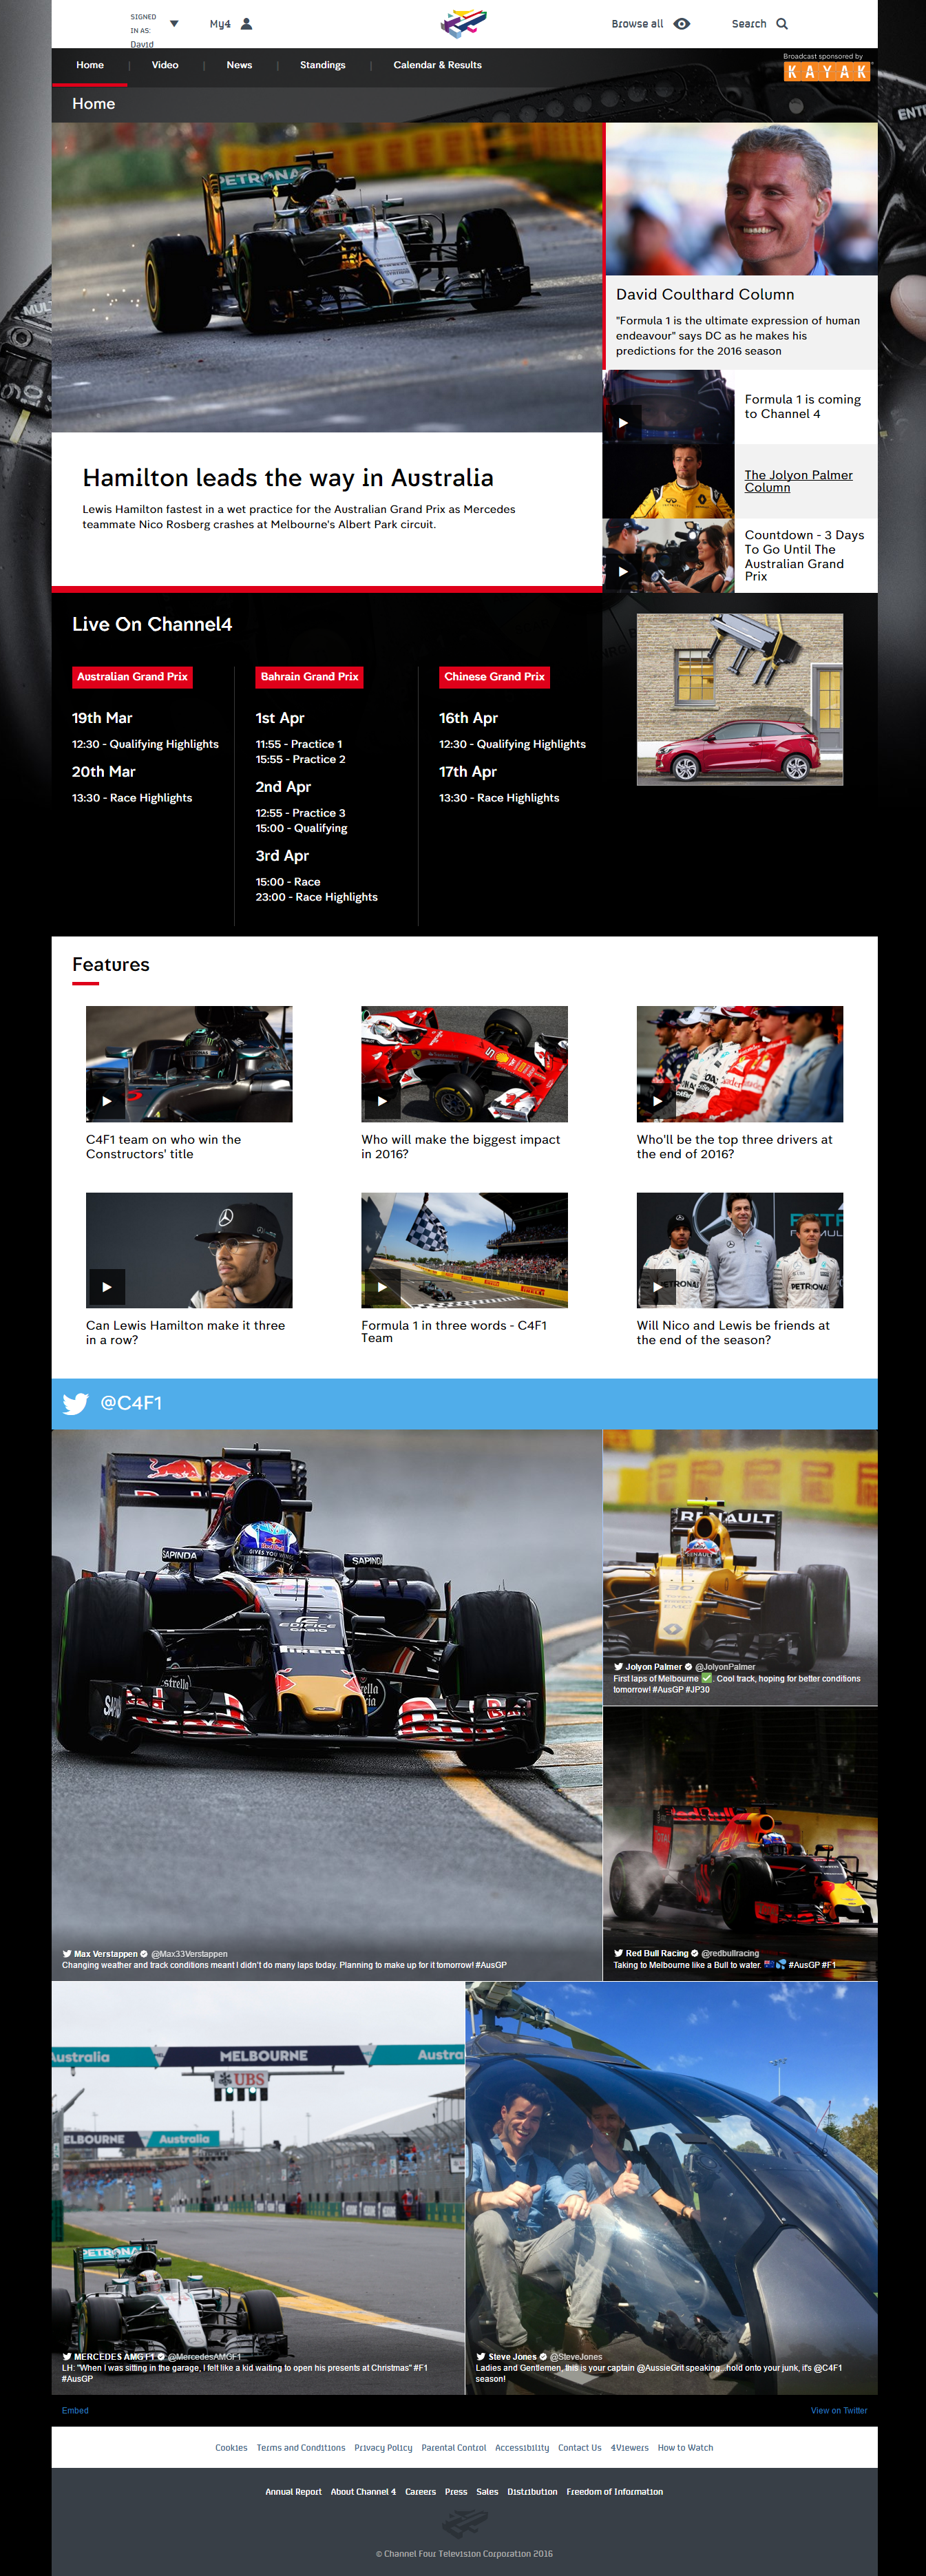 The New F1 Canna Cannova Is Set To Take Cannas To A New: Channel 4 Launches New Formula 1 Website